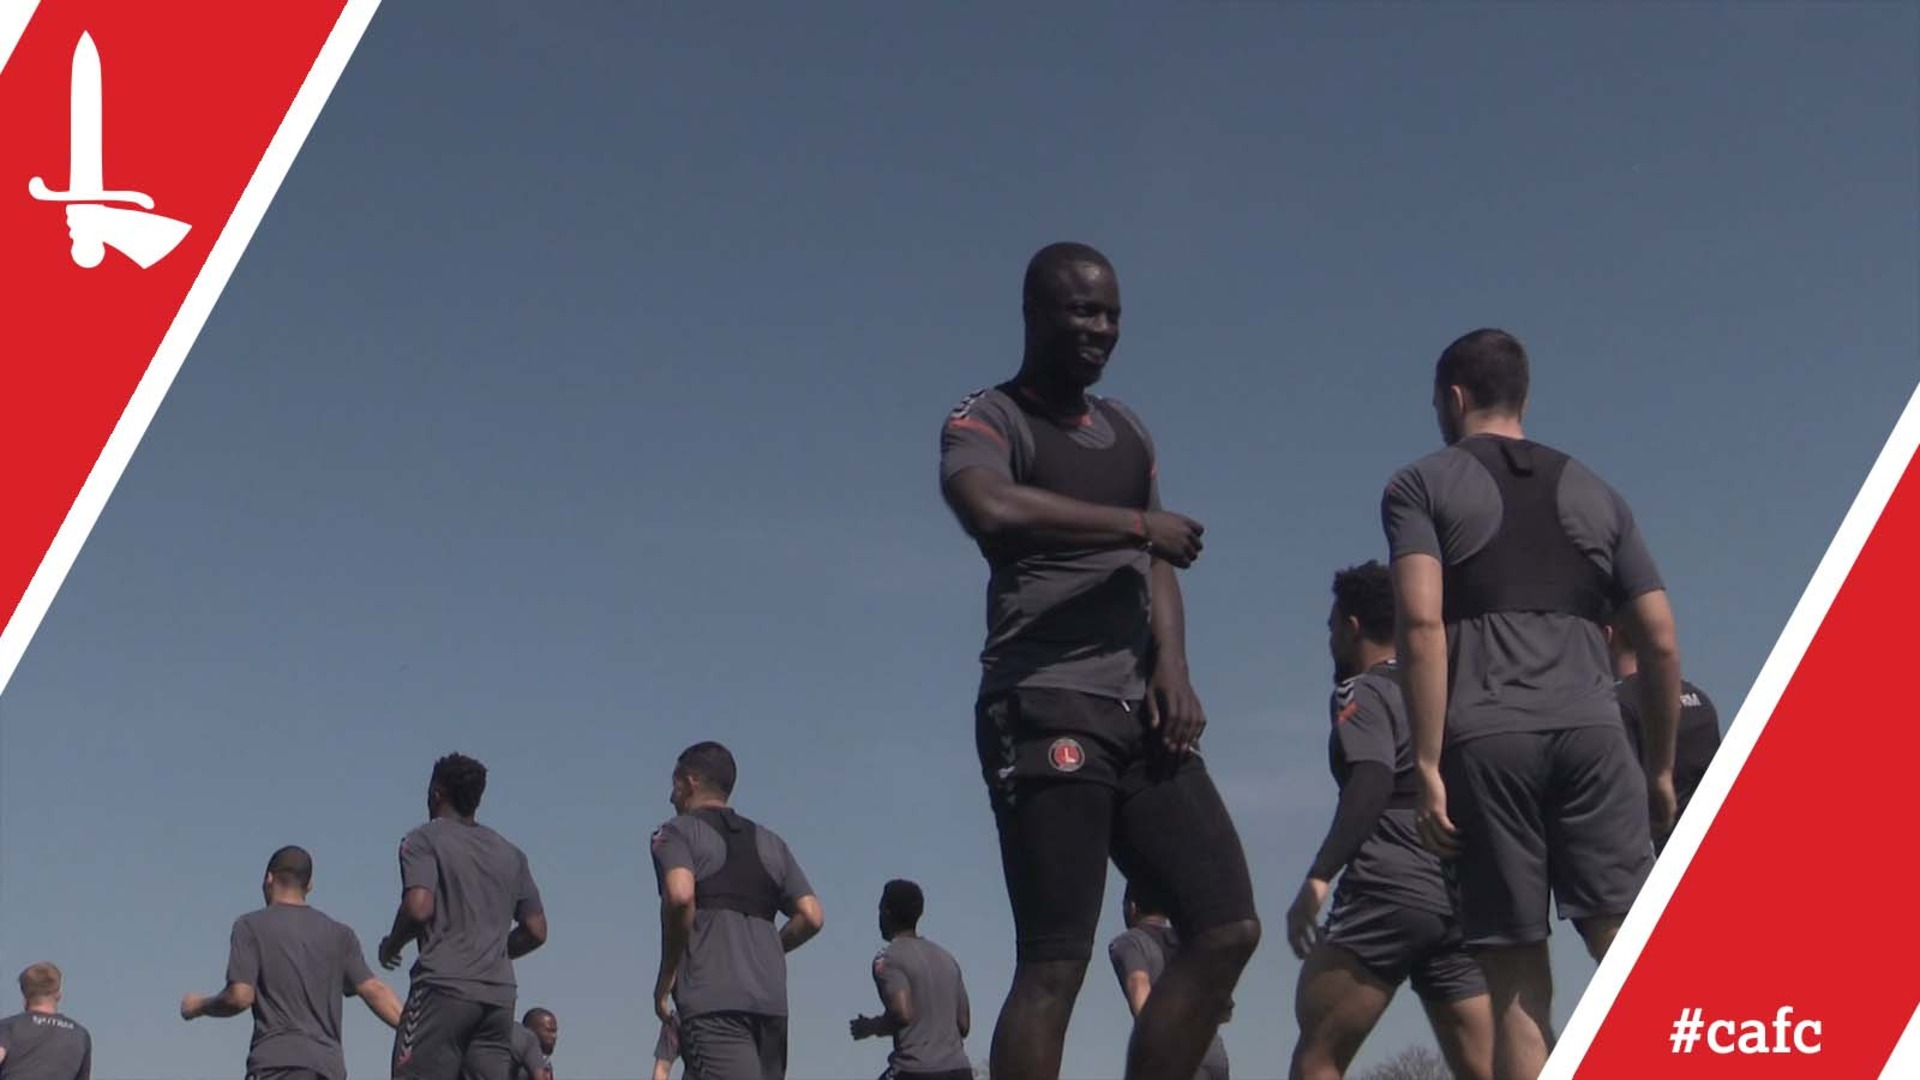 The hottest day of 2018 so far | Behind the Scenes at the Training Ground (19/04/18)